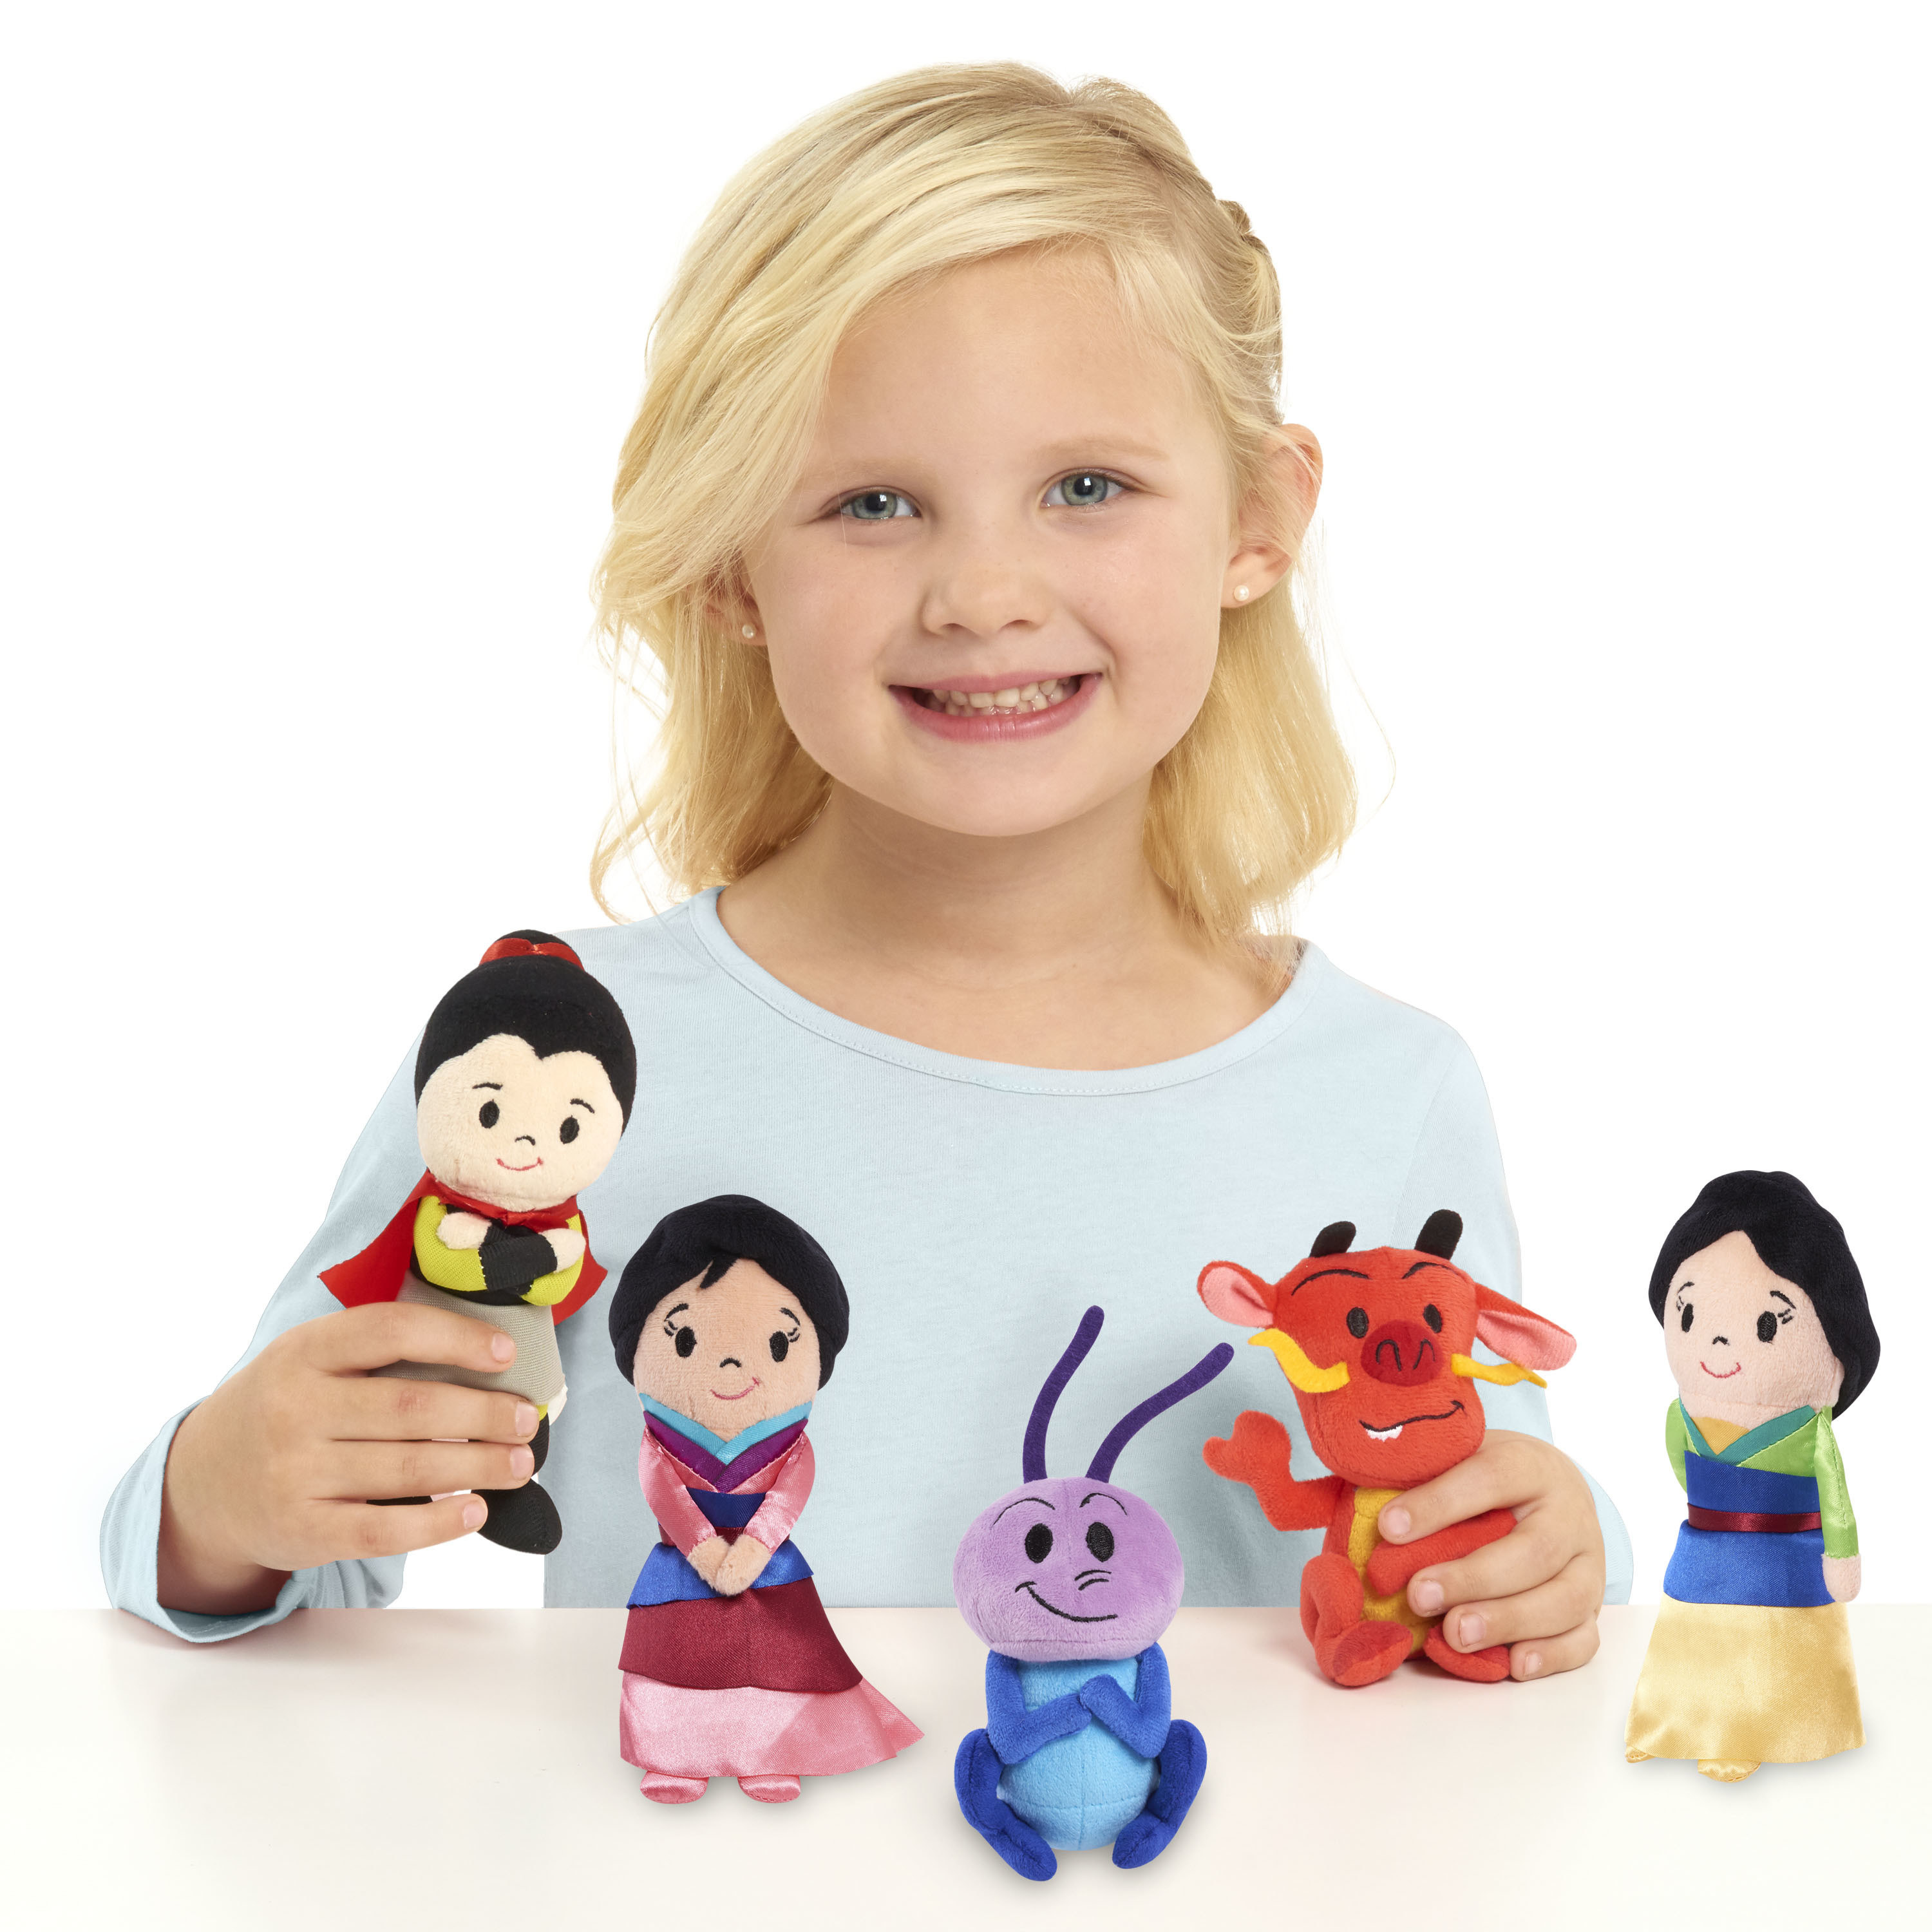 kid playing with five plush dolls from the disney movie Mulan